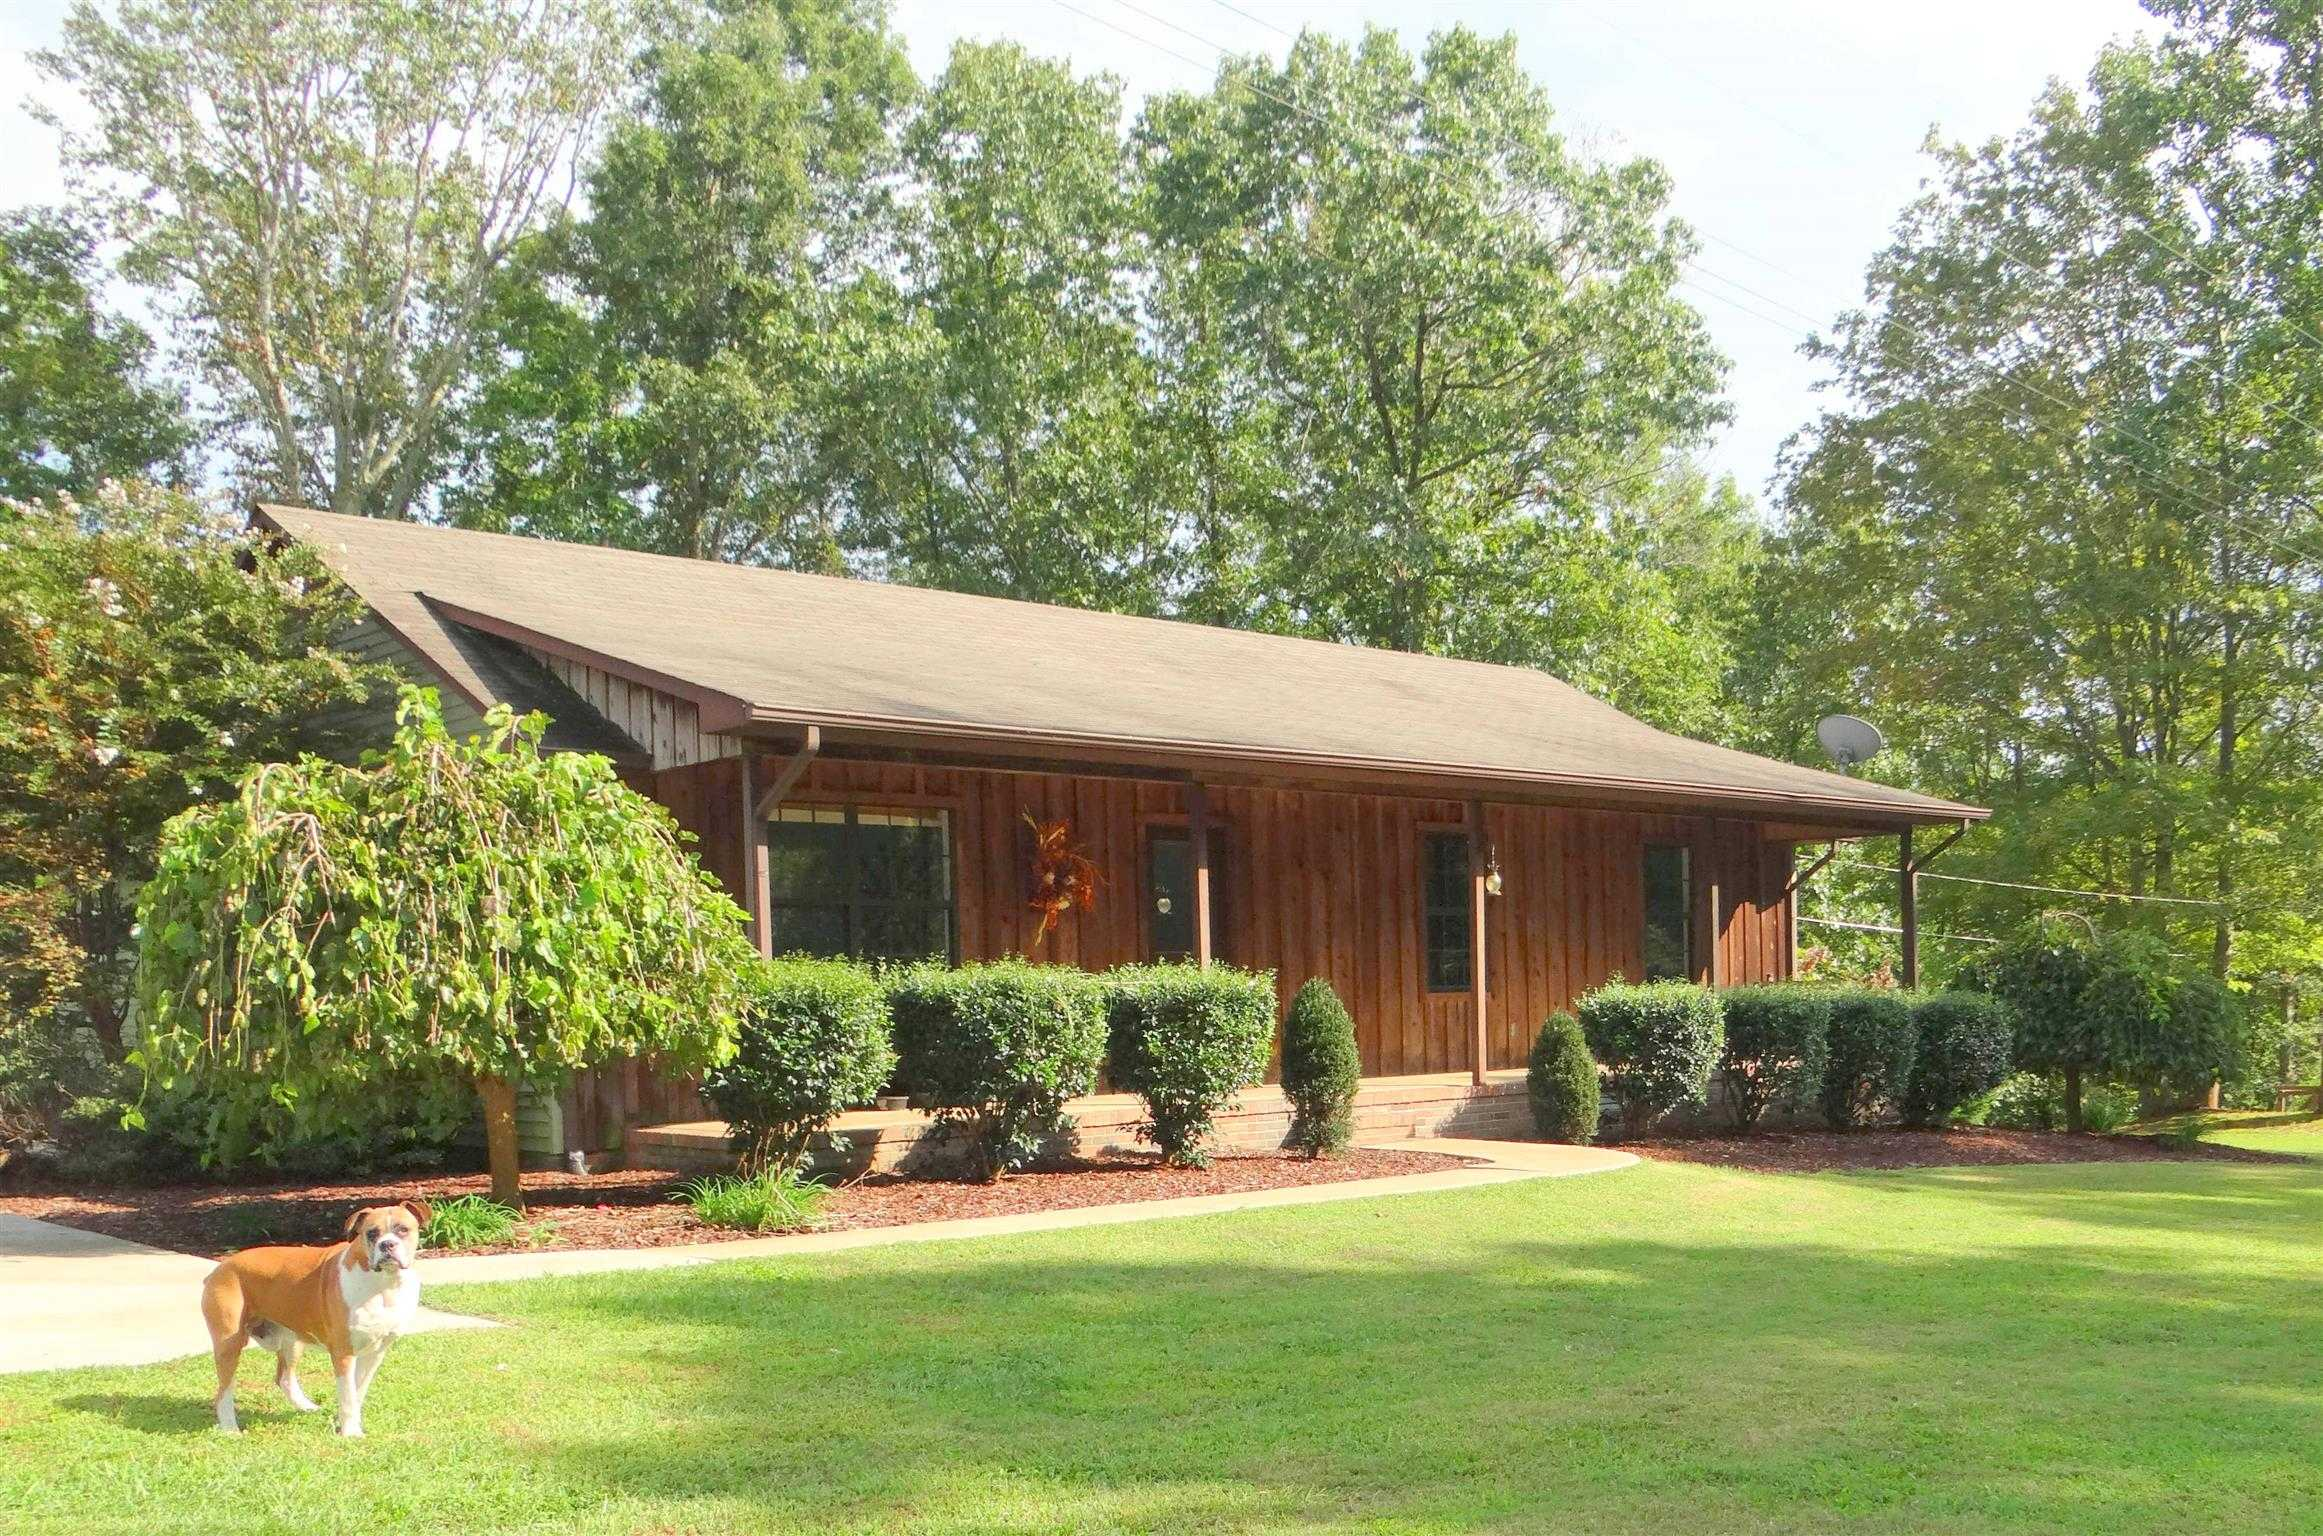 Homes For Sale In Hermitage Tn Under $150K